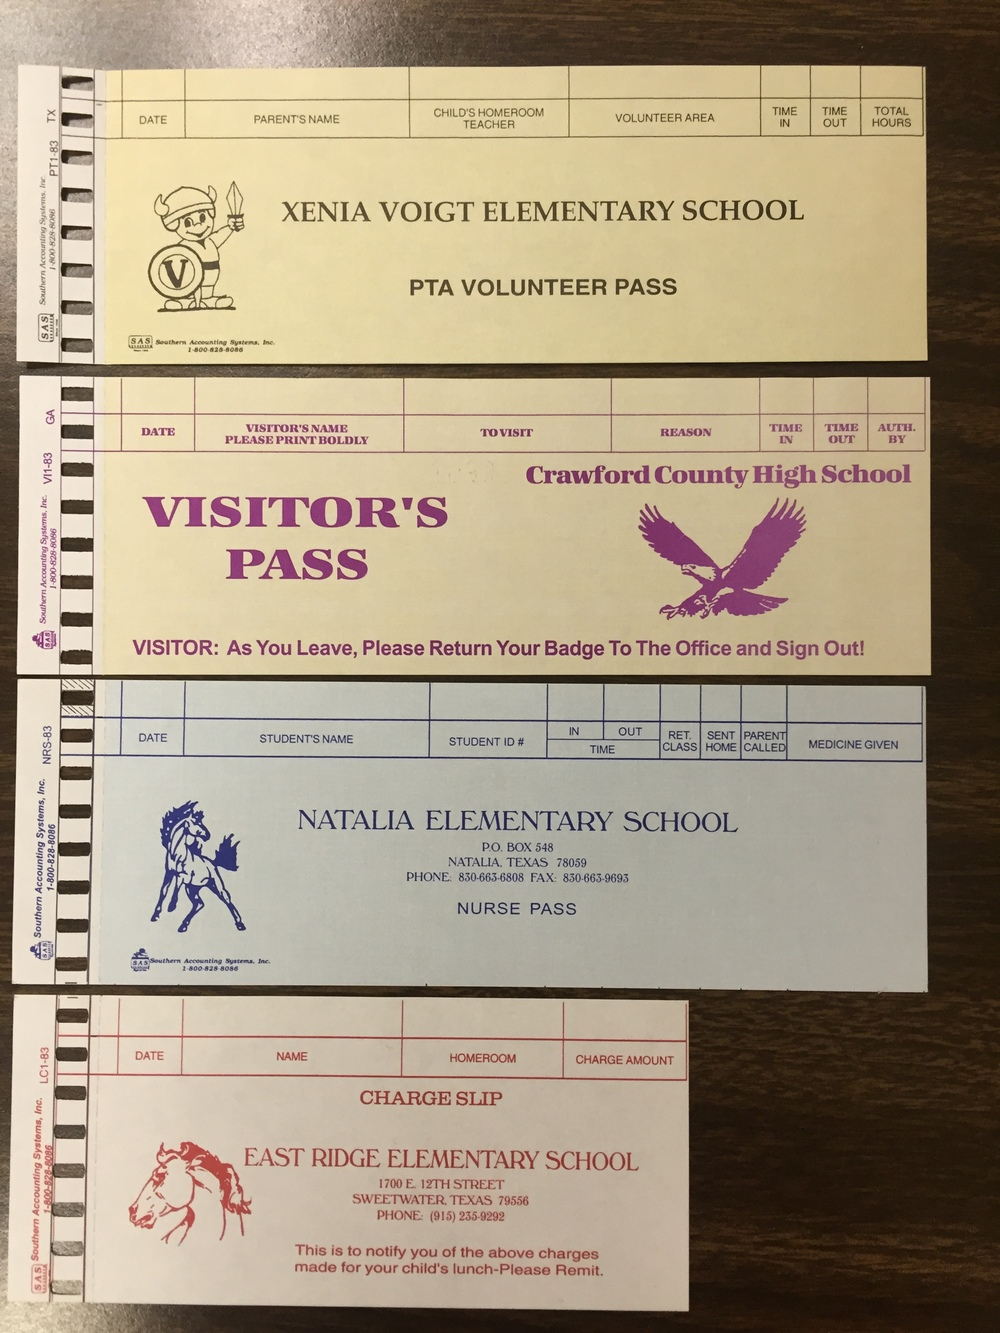 Samples of some of the more popular check in and out passes